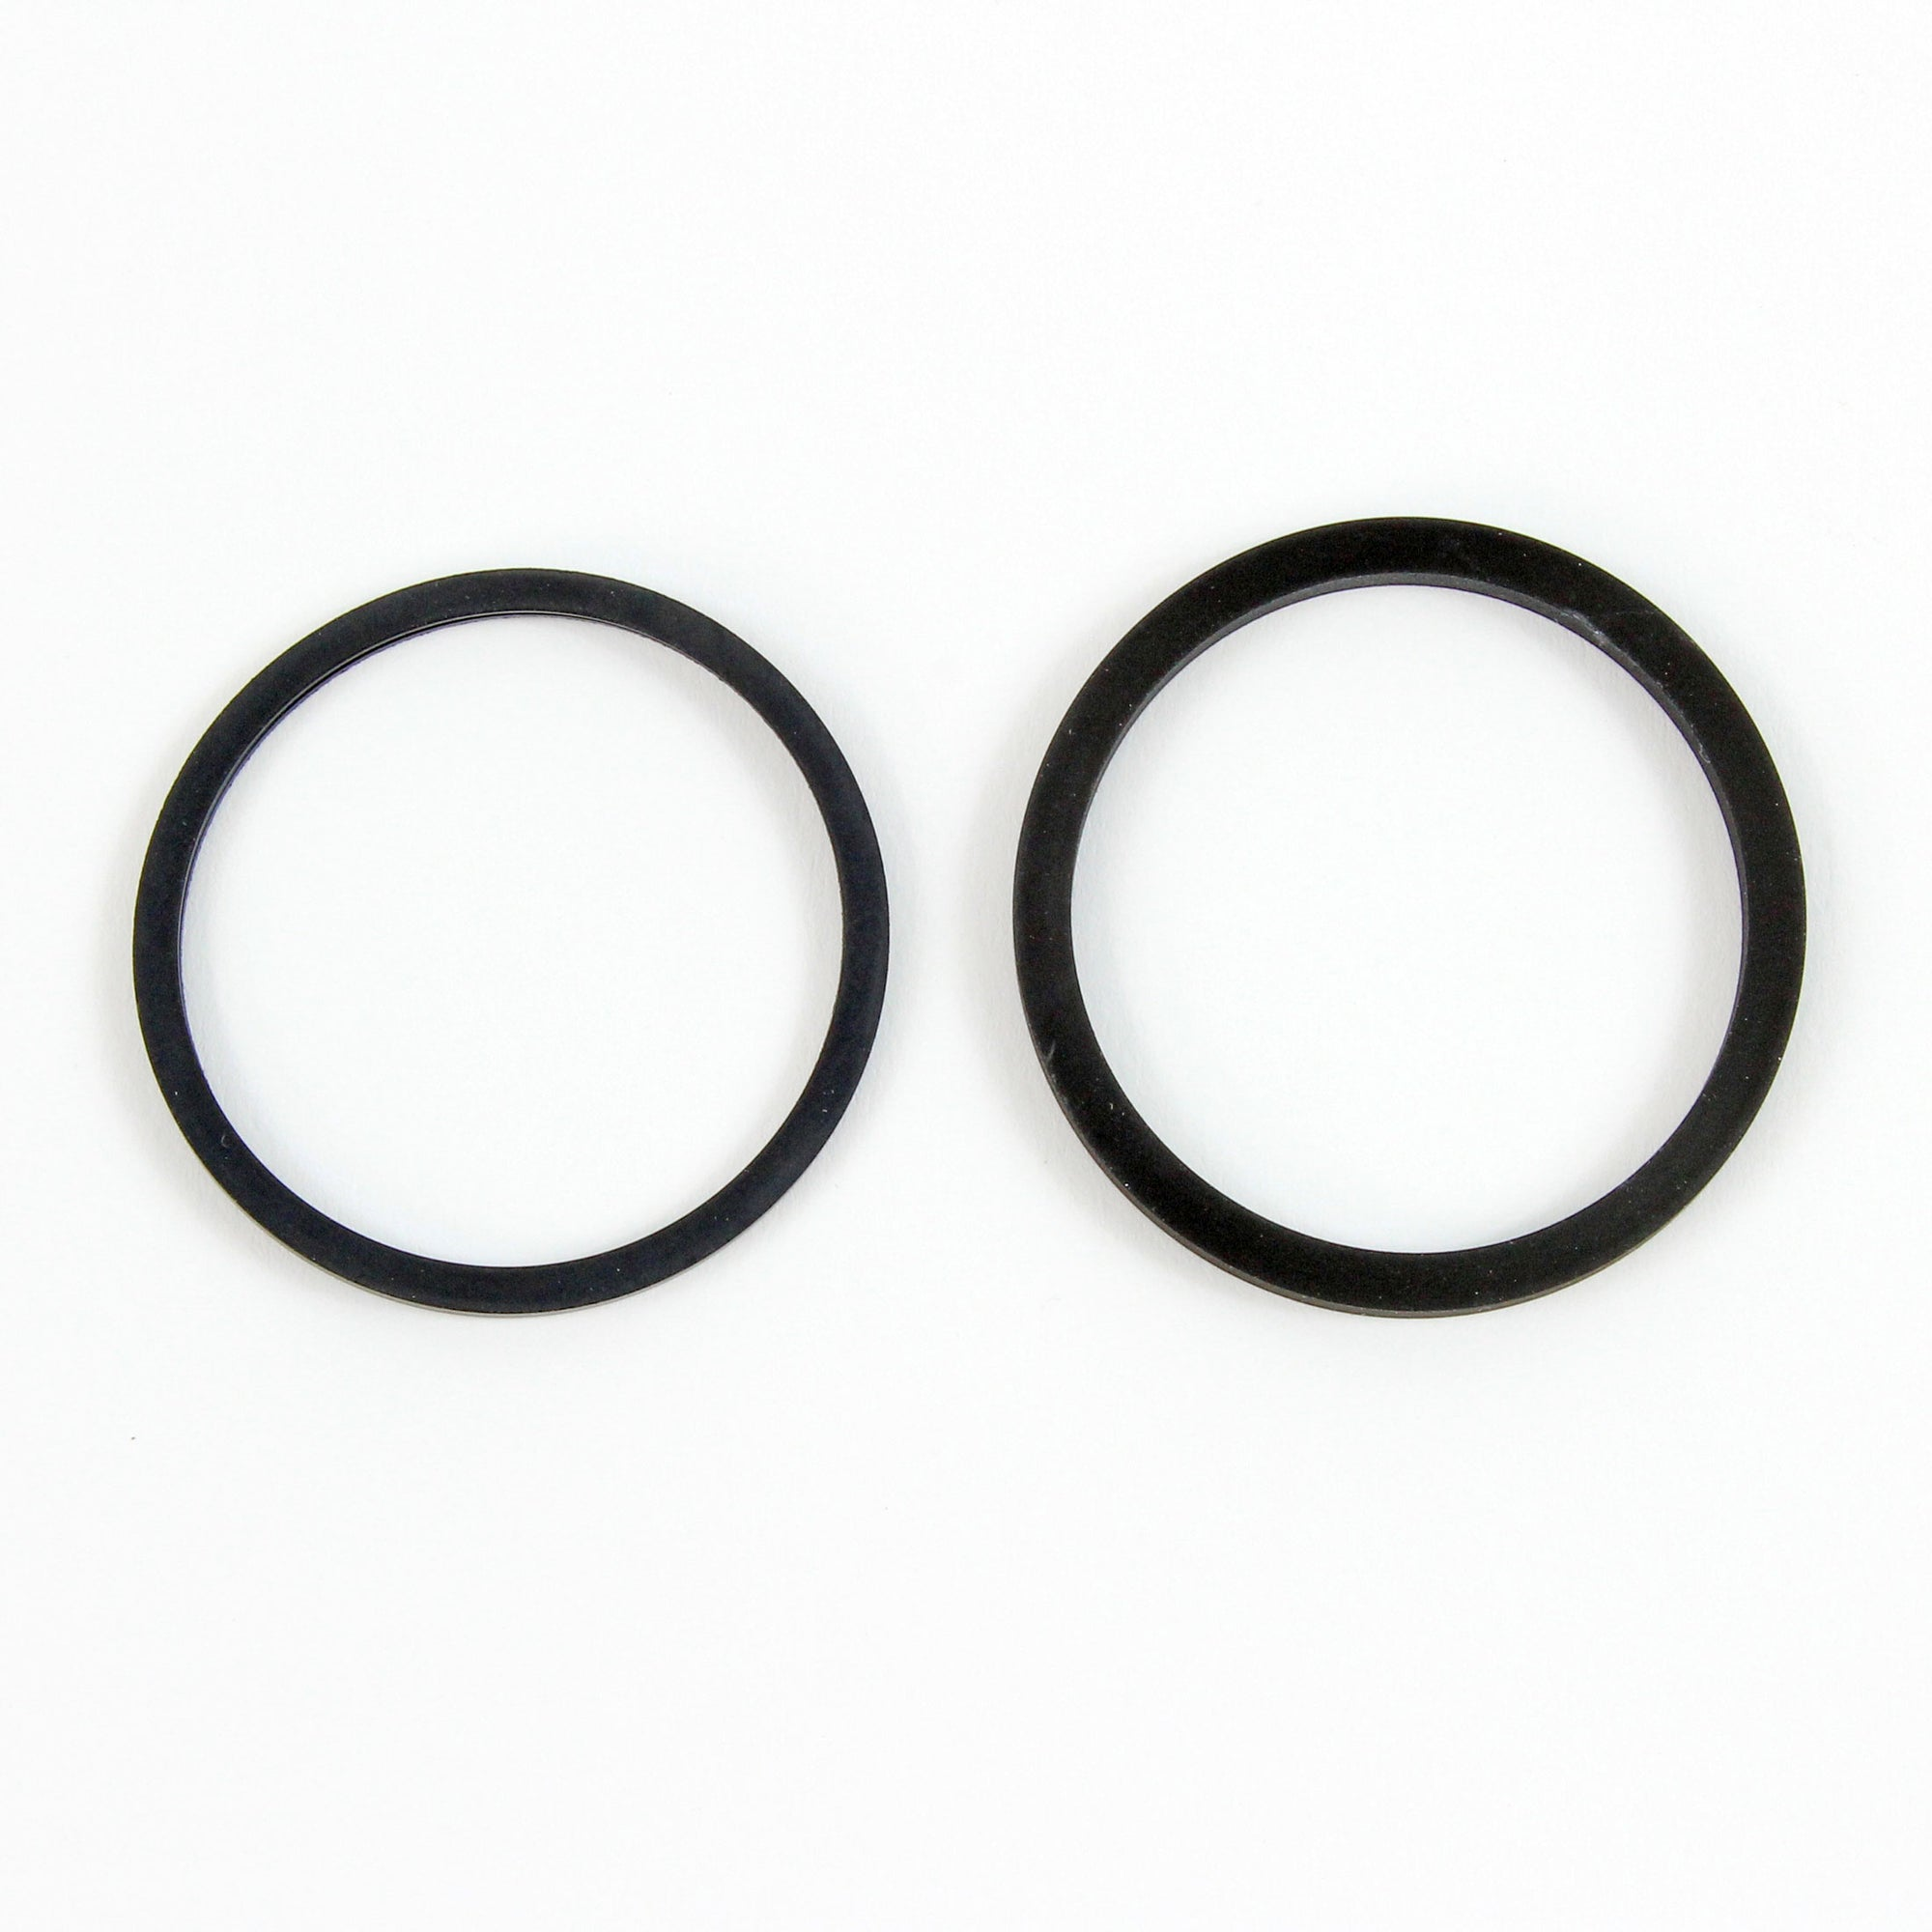 Internal Diameter (I.D) 38mm - Motorcycle Brake Caliper Seal set (Pressure seal - Dust Seal)